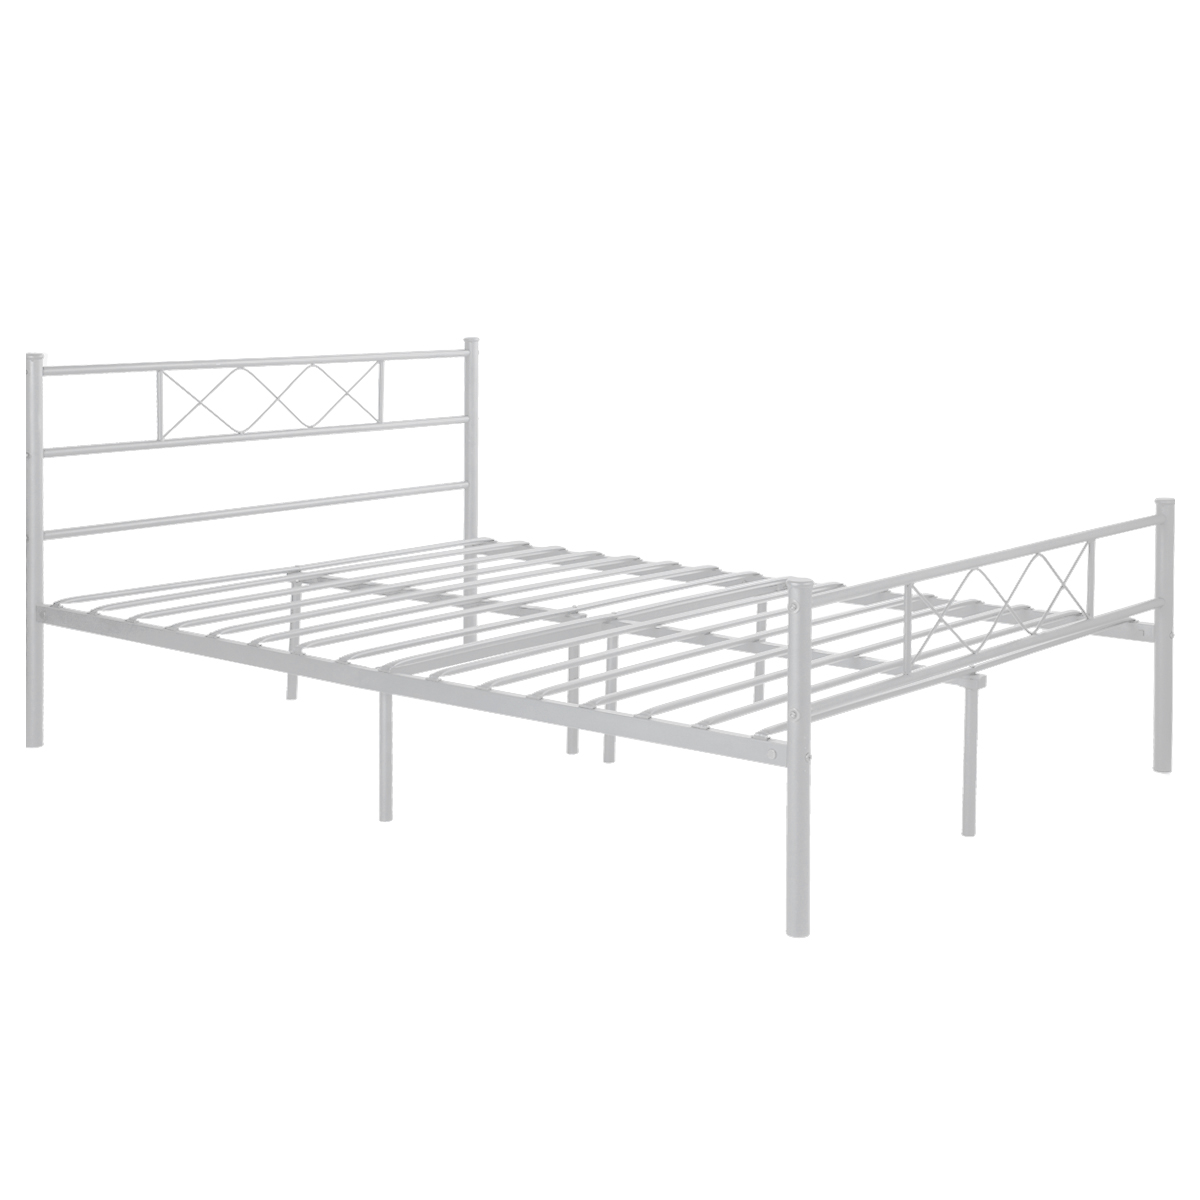 Simlife Metal Platform Bed Frame With Headboards Full White